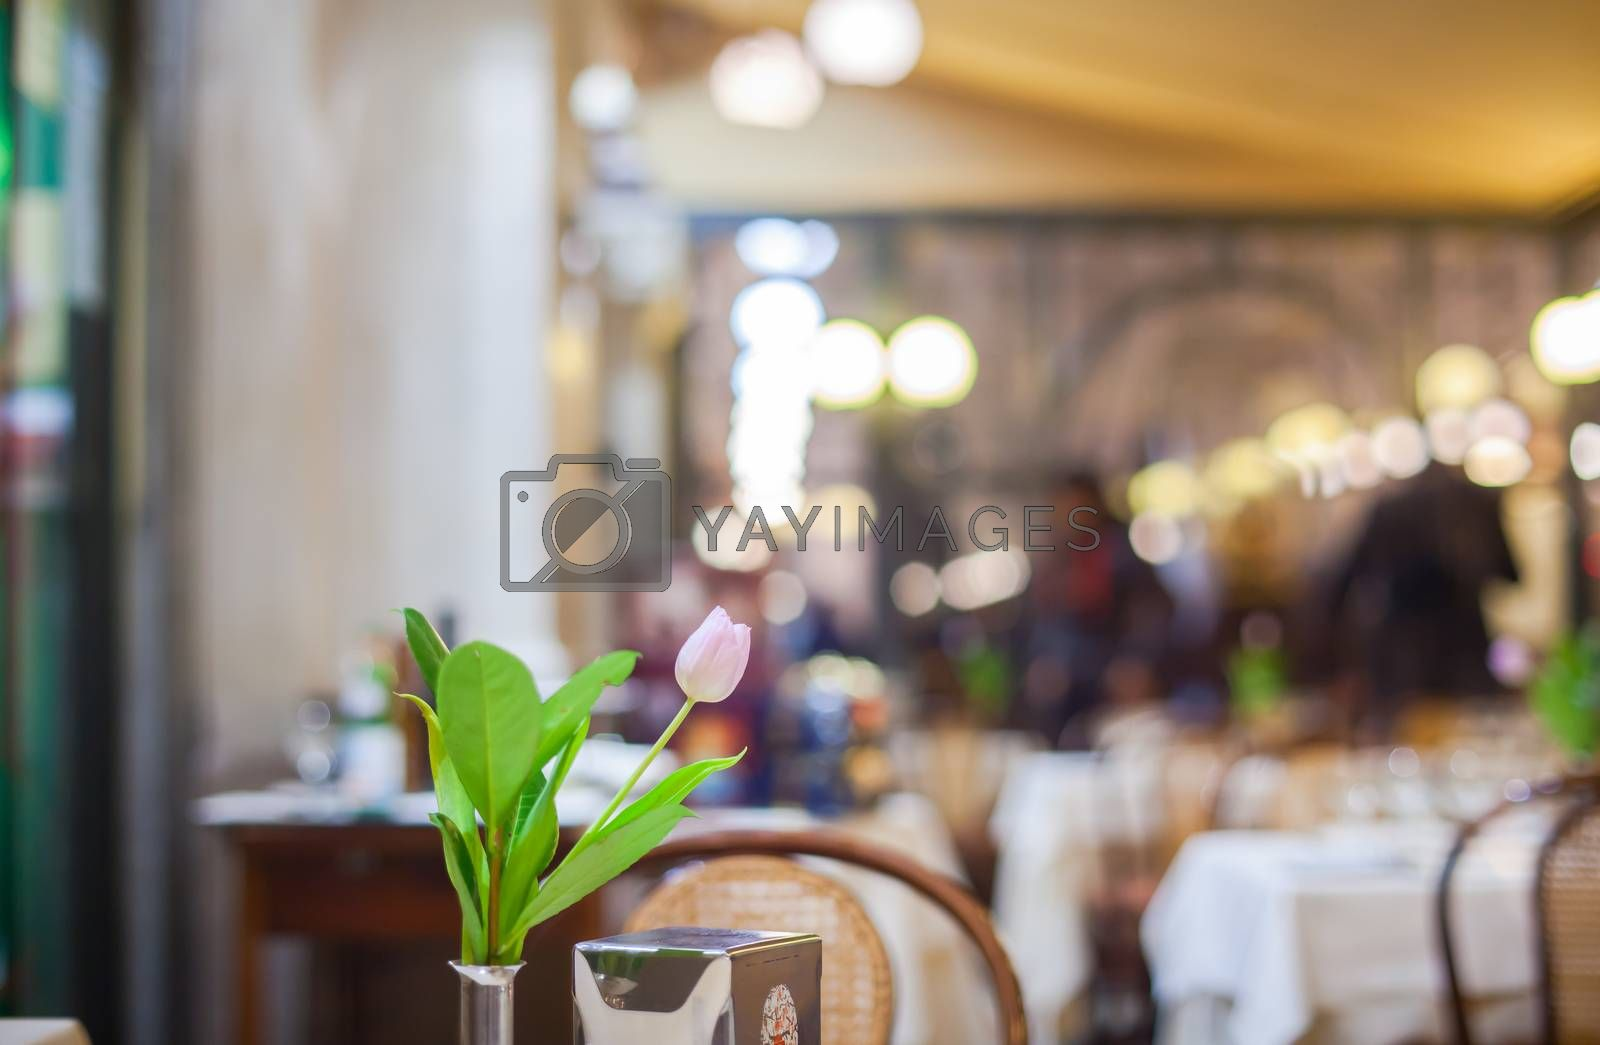 View of tulip flower on the restaurant table